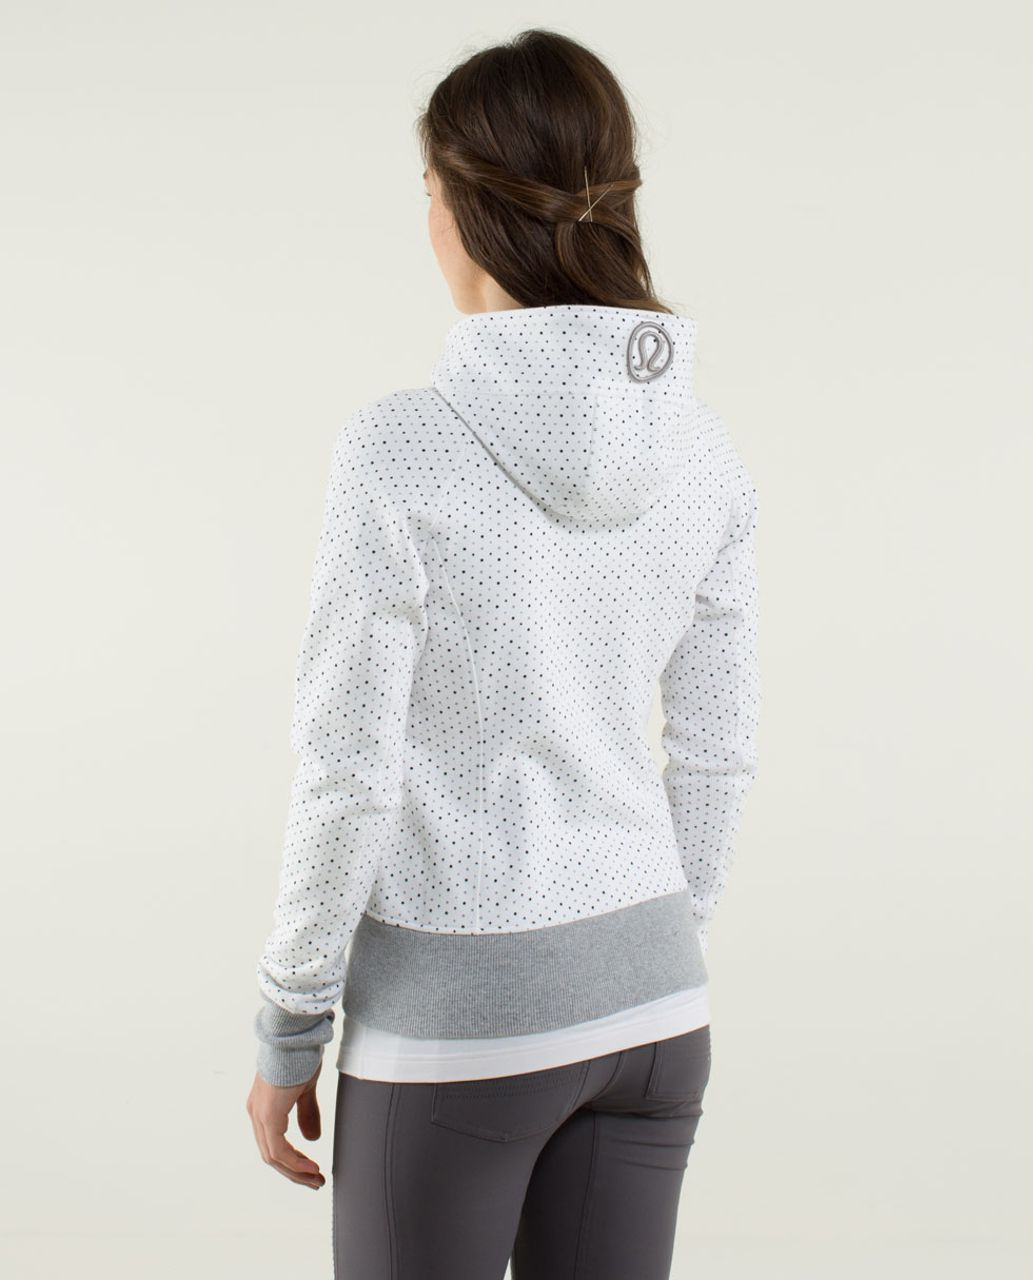 Lululemon Scuba Hoodie *Stretch (Lined Hood) - Chevron Dot White / White / Wee Stripe White Heathered Medium Grey / White